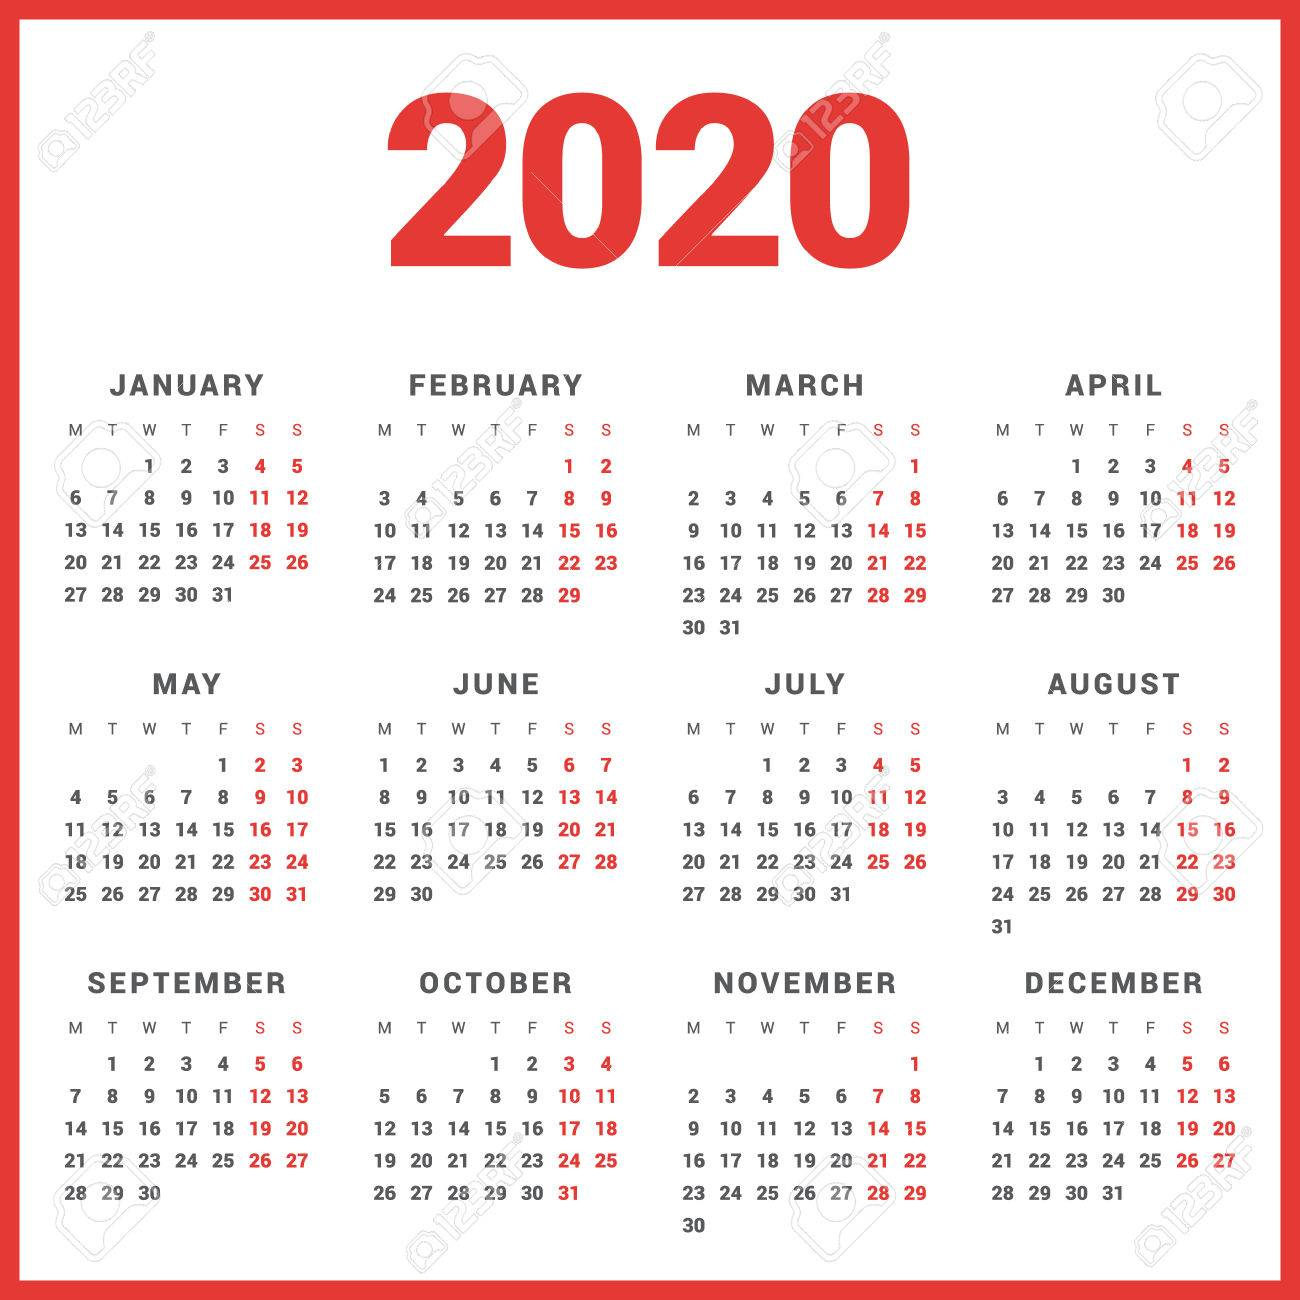 week of the year 2020